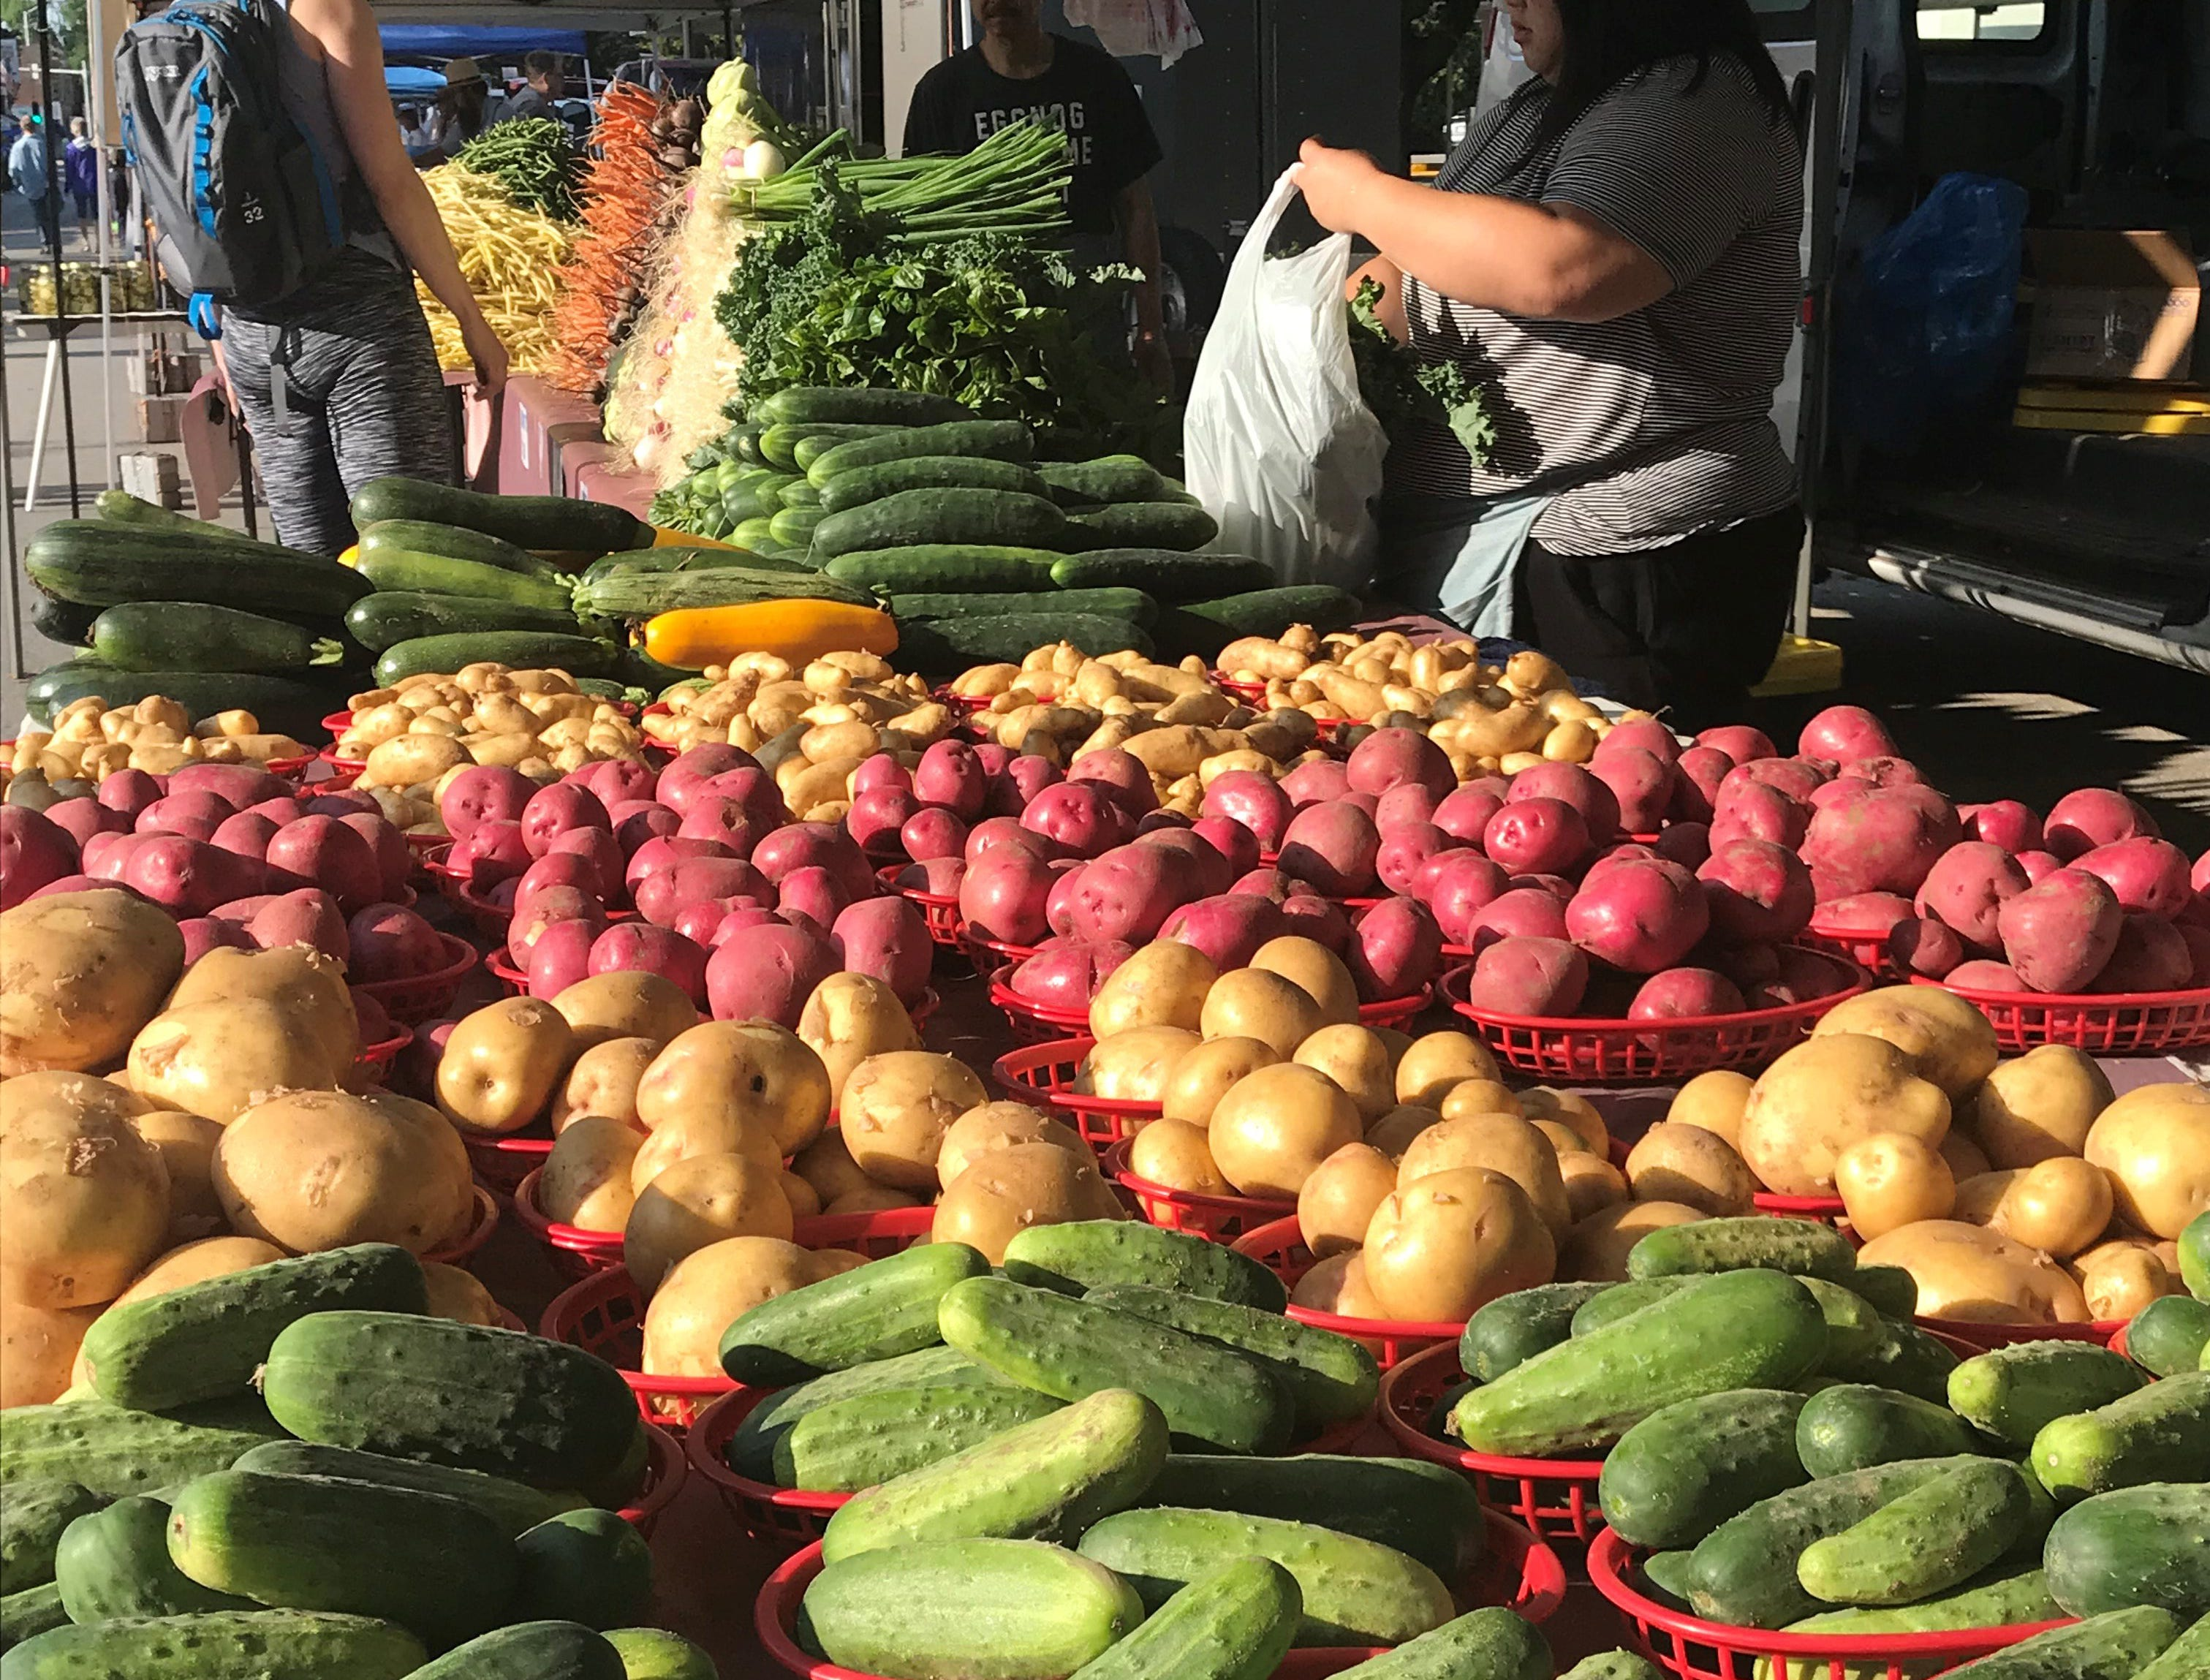 WI School for Beginning Market Growers accepting applications